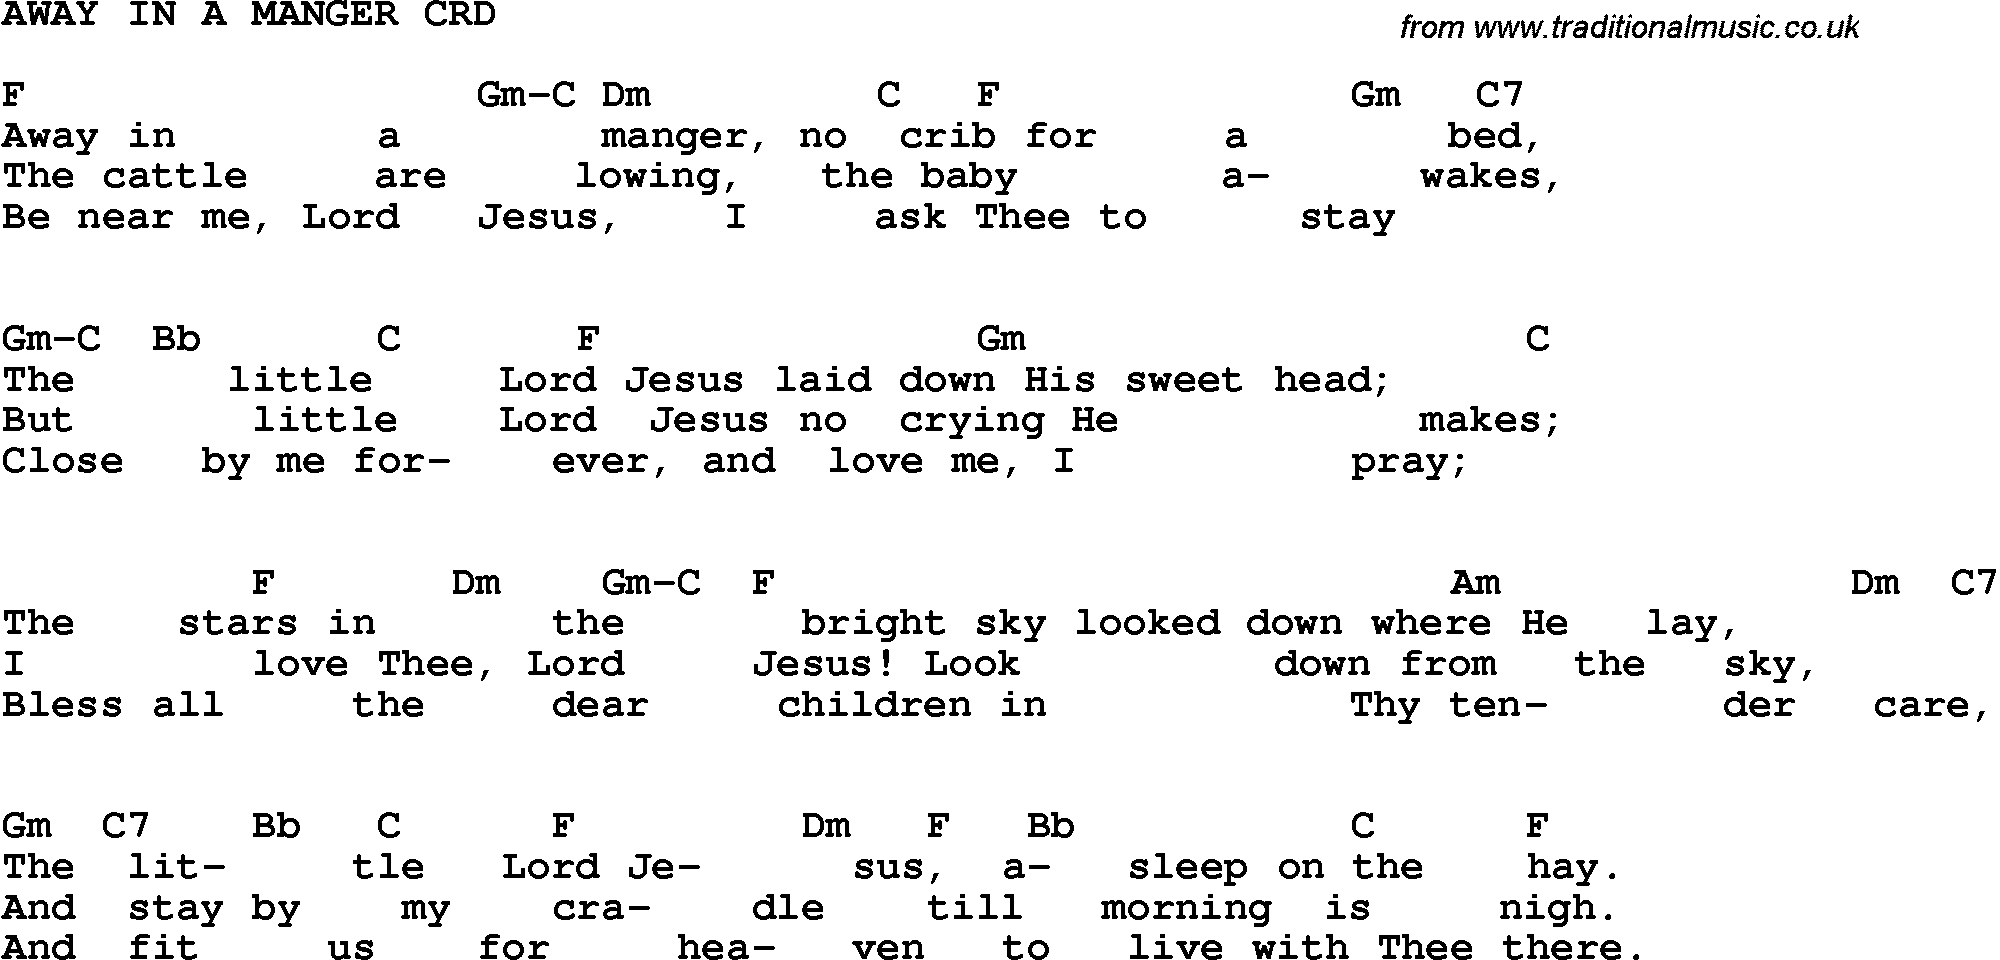 Christian Childrens Song: Away In A Manger Lyrics and Chords